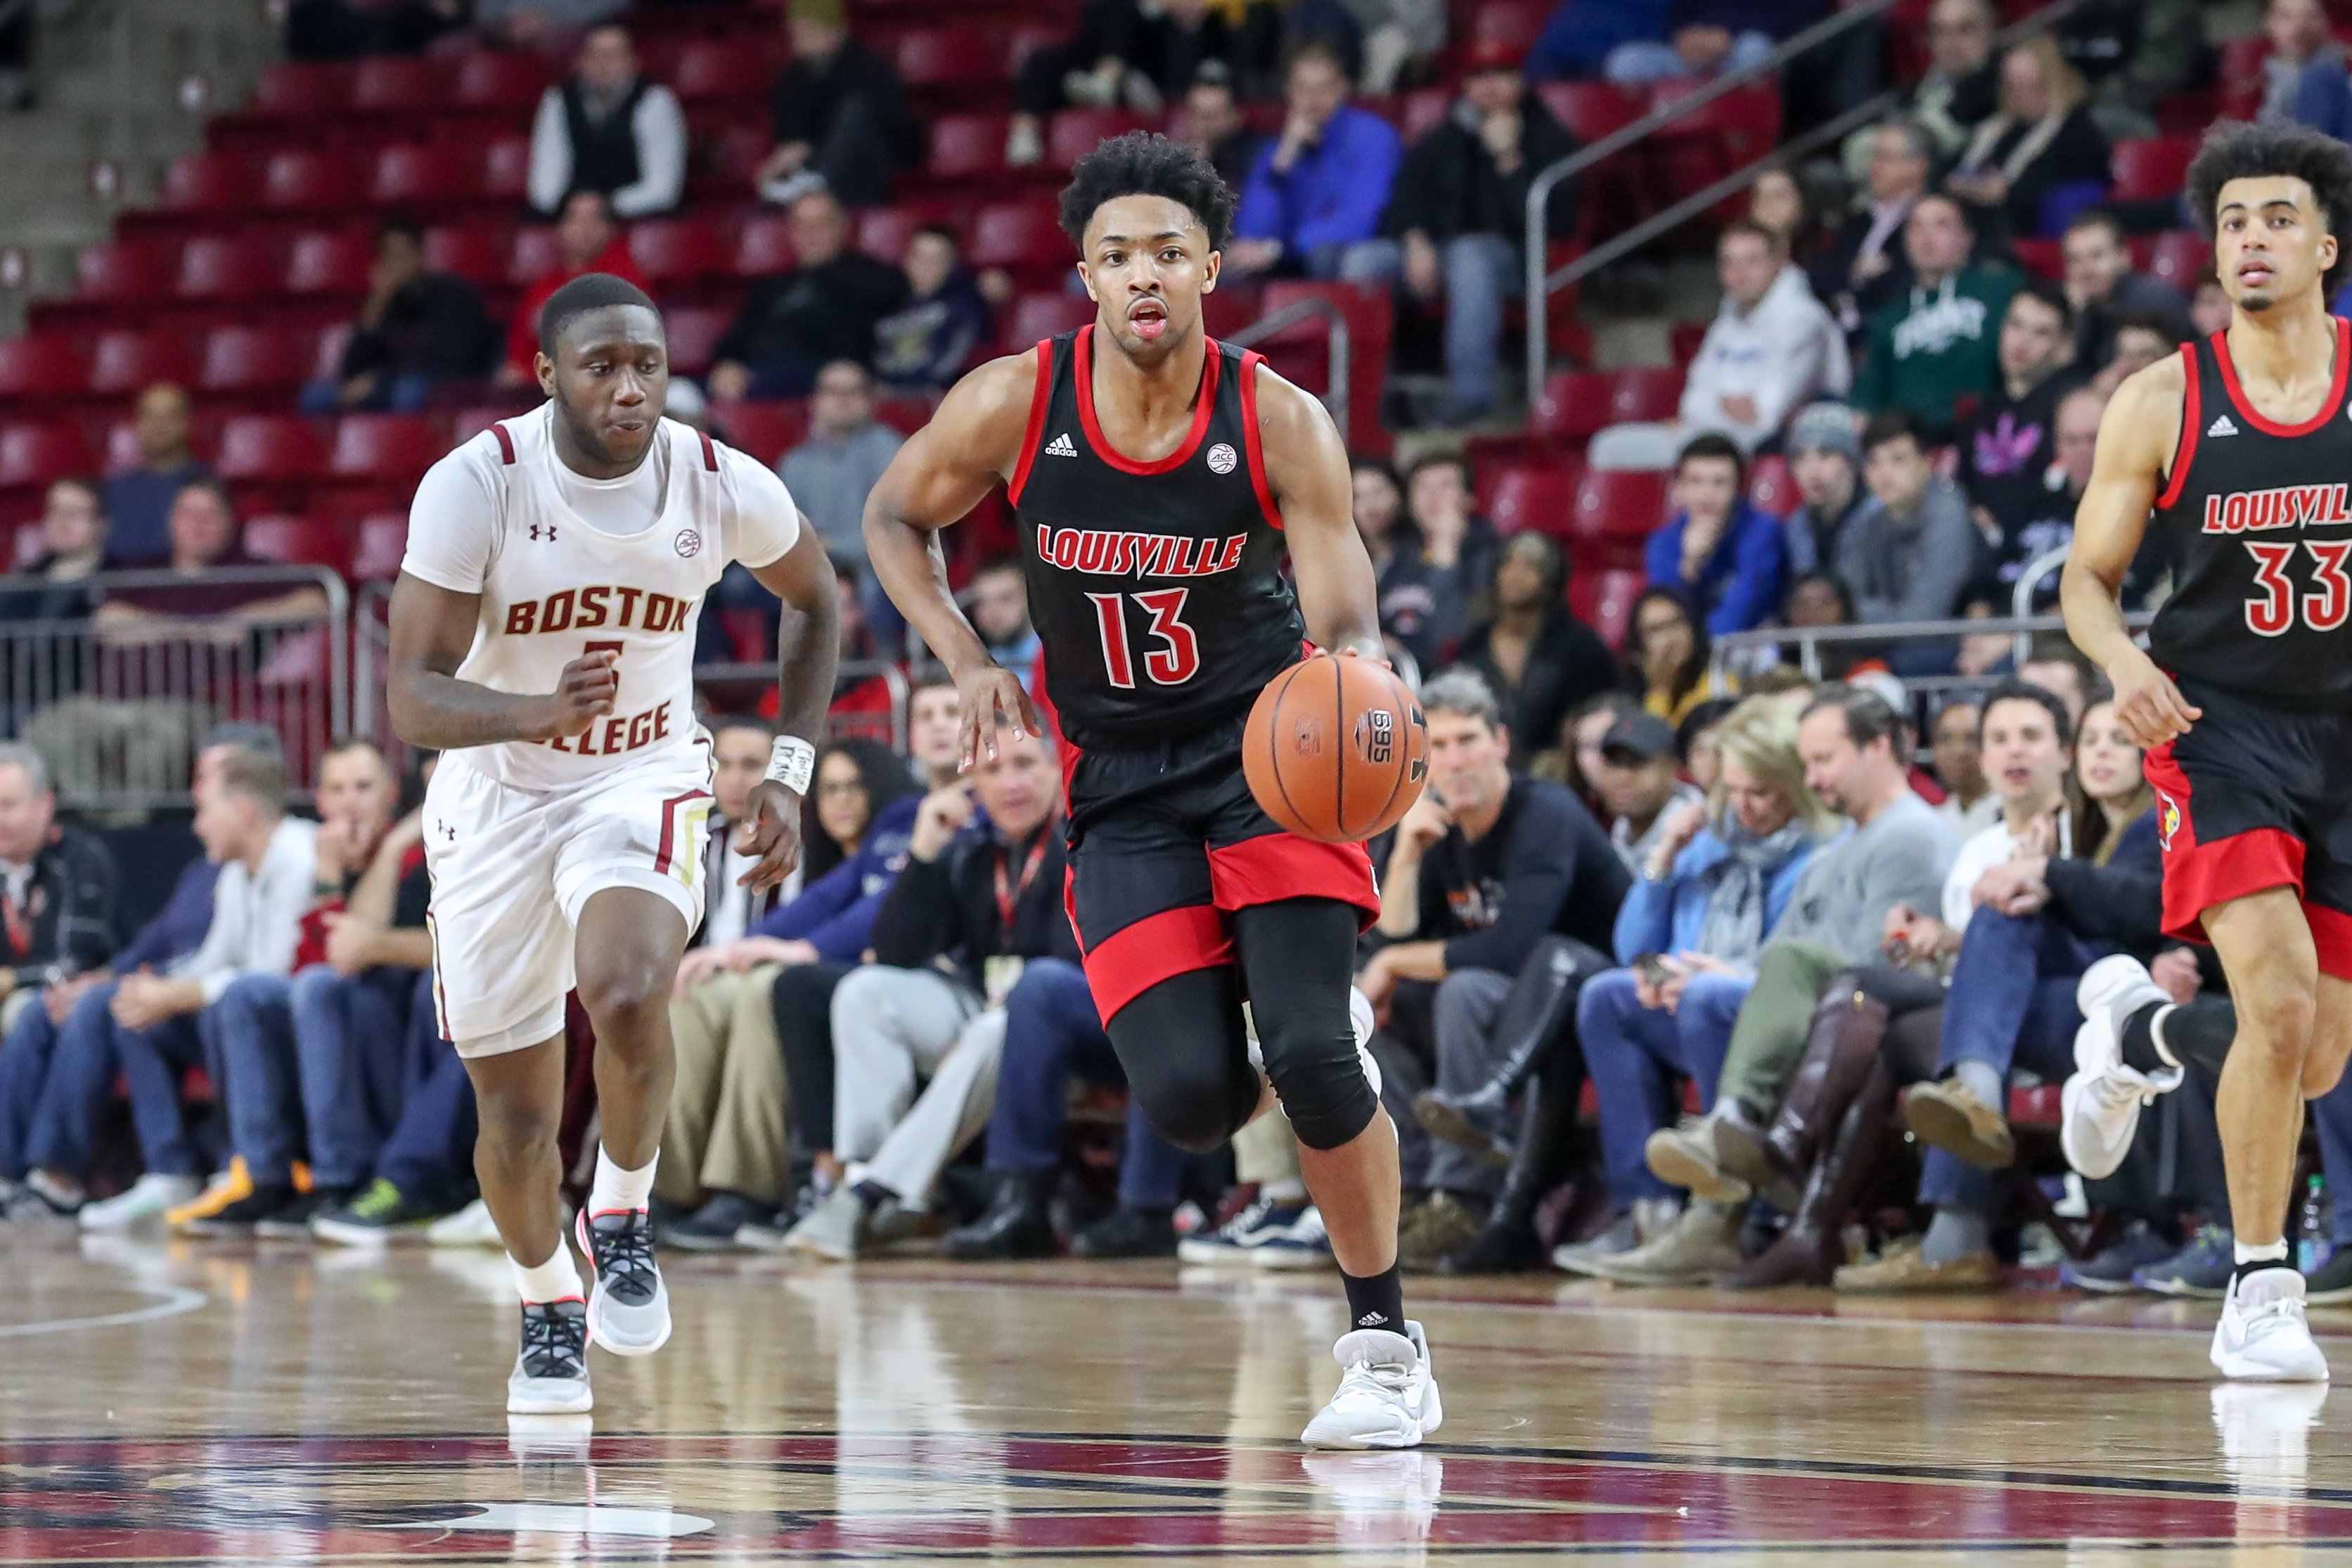 COLLEGE BASKETBALL: JAN 29 Louisville at Boston College